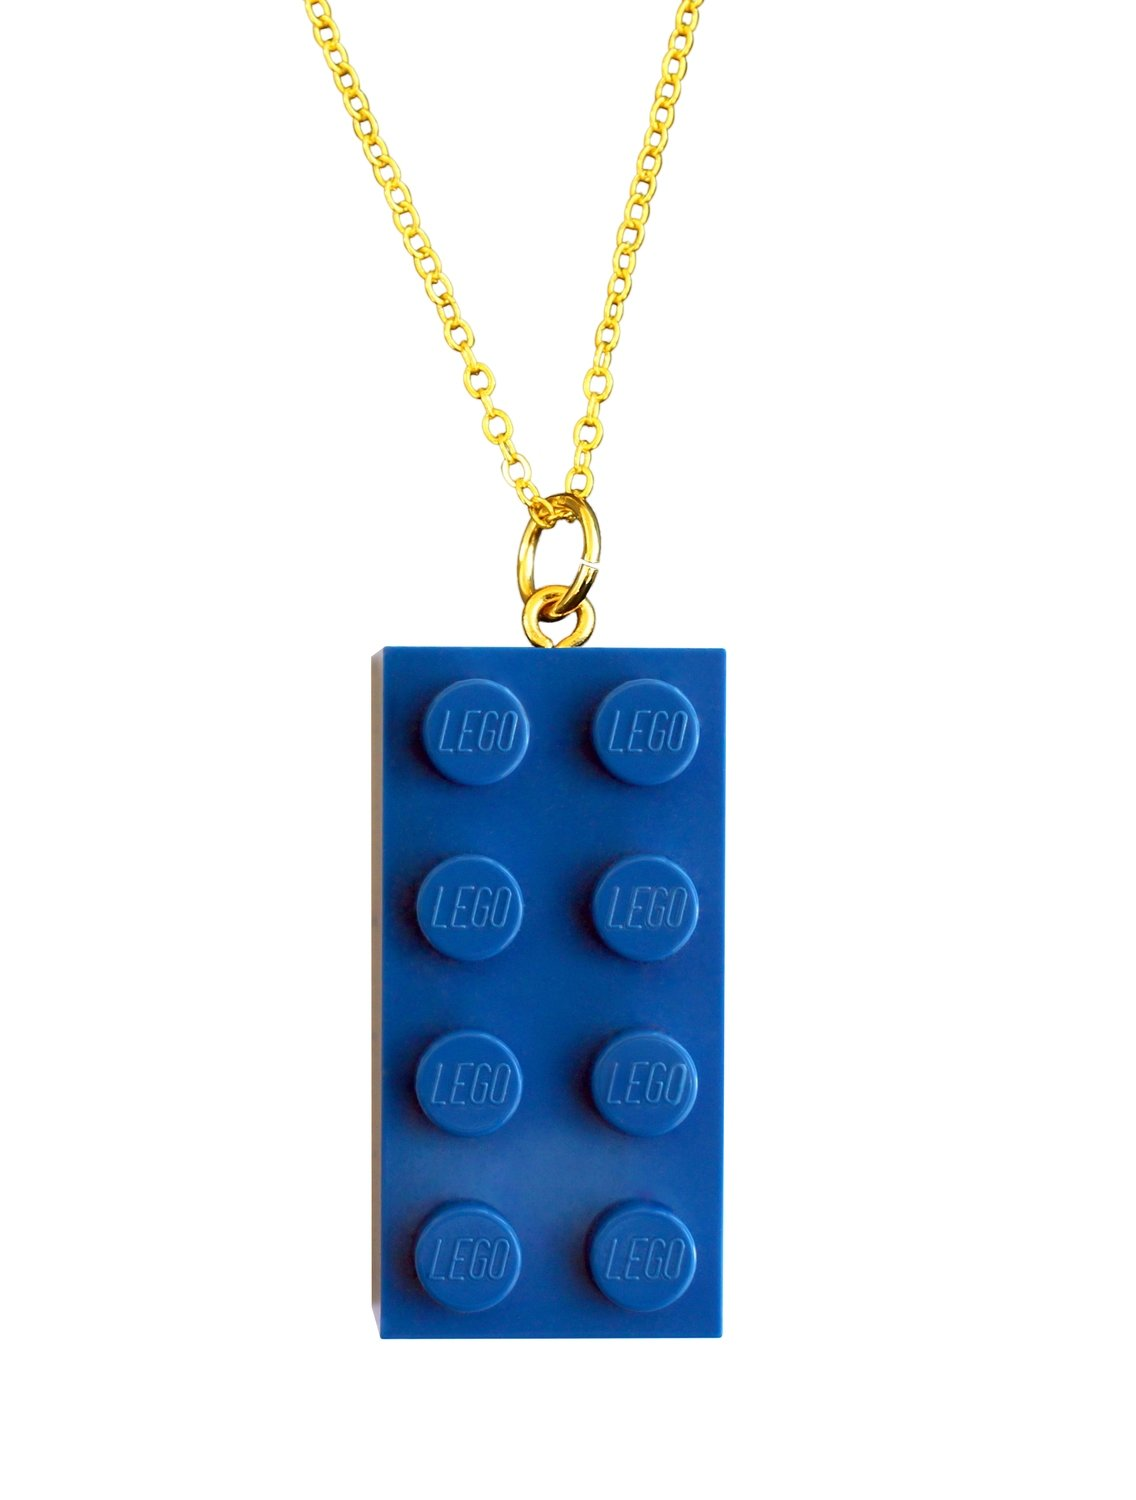 "Dark Blue LEGO® brick 2x4 on a Gold plated trace chain (18"" or 24"")"